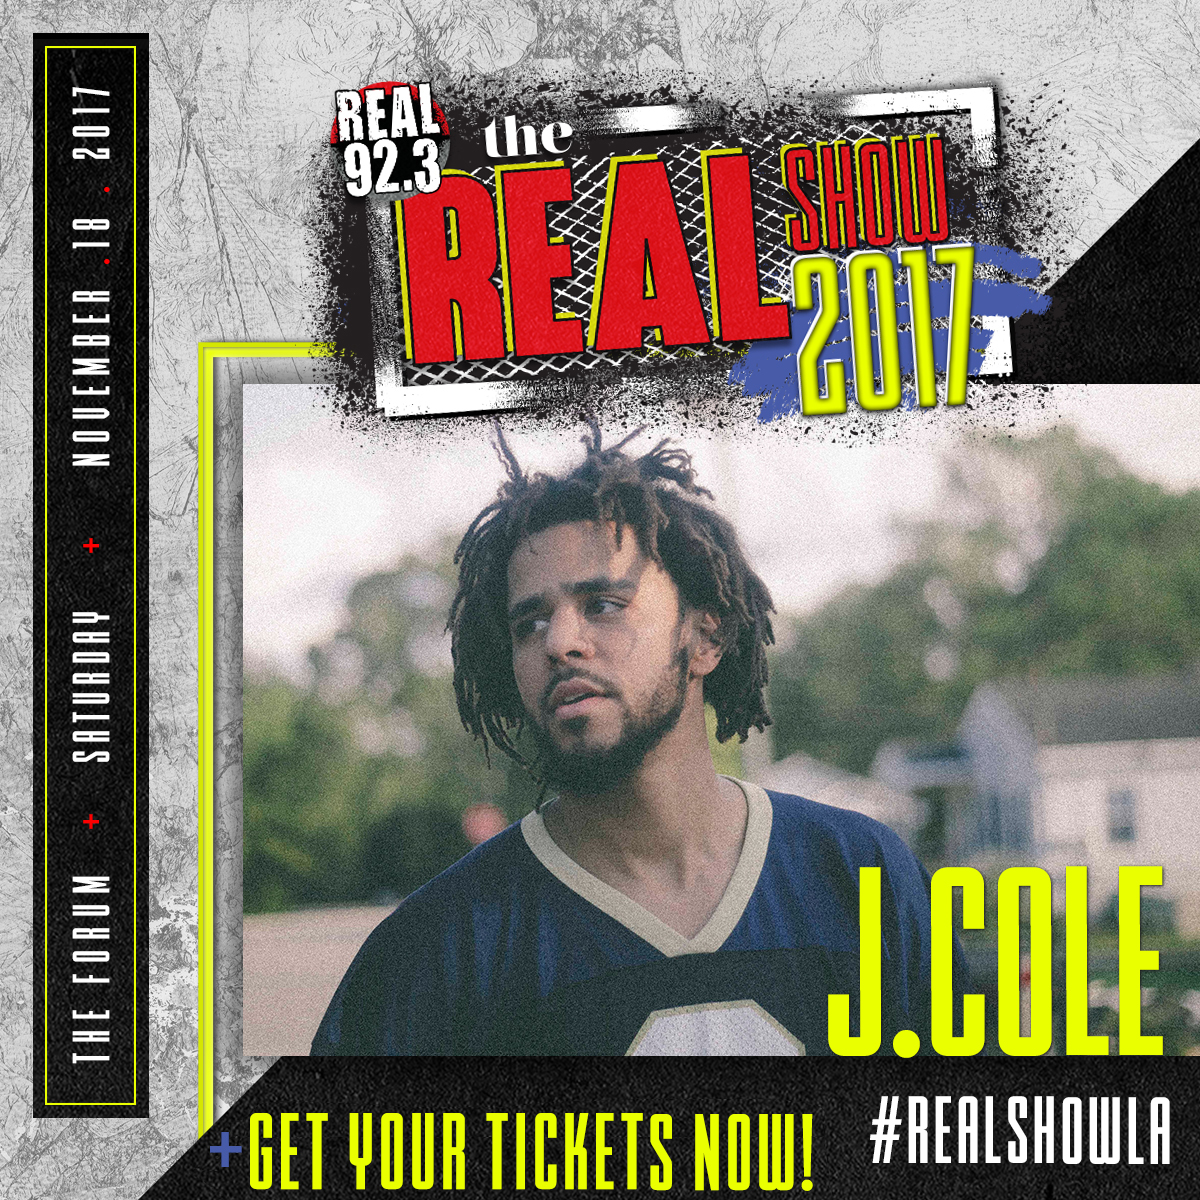 J.Cole_Real